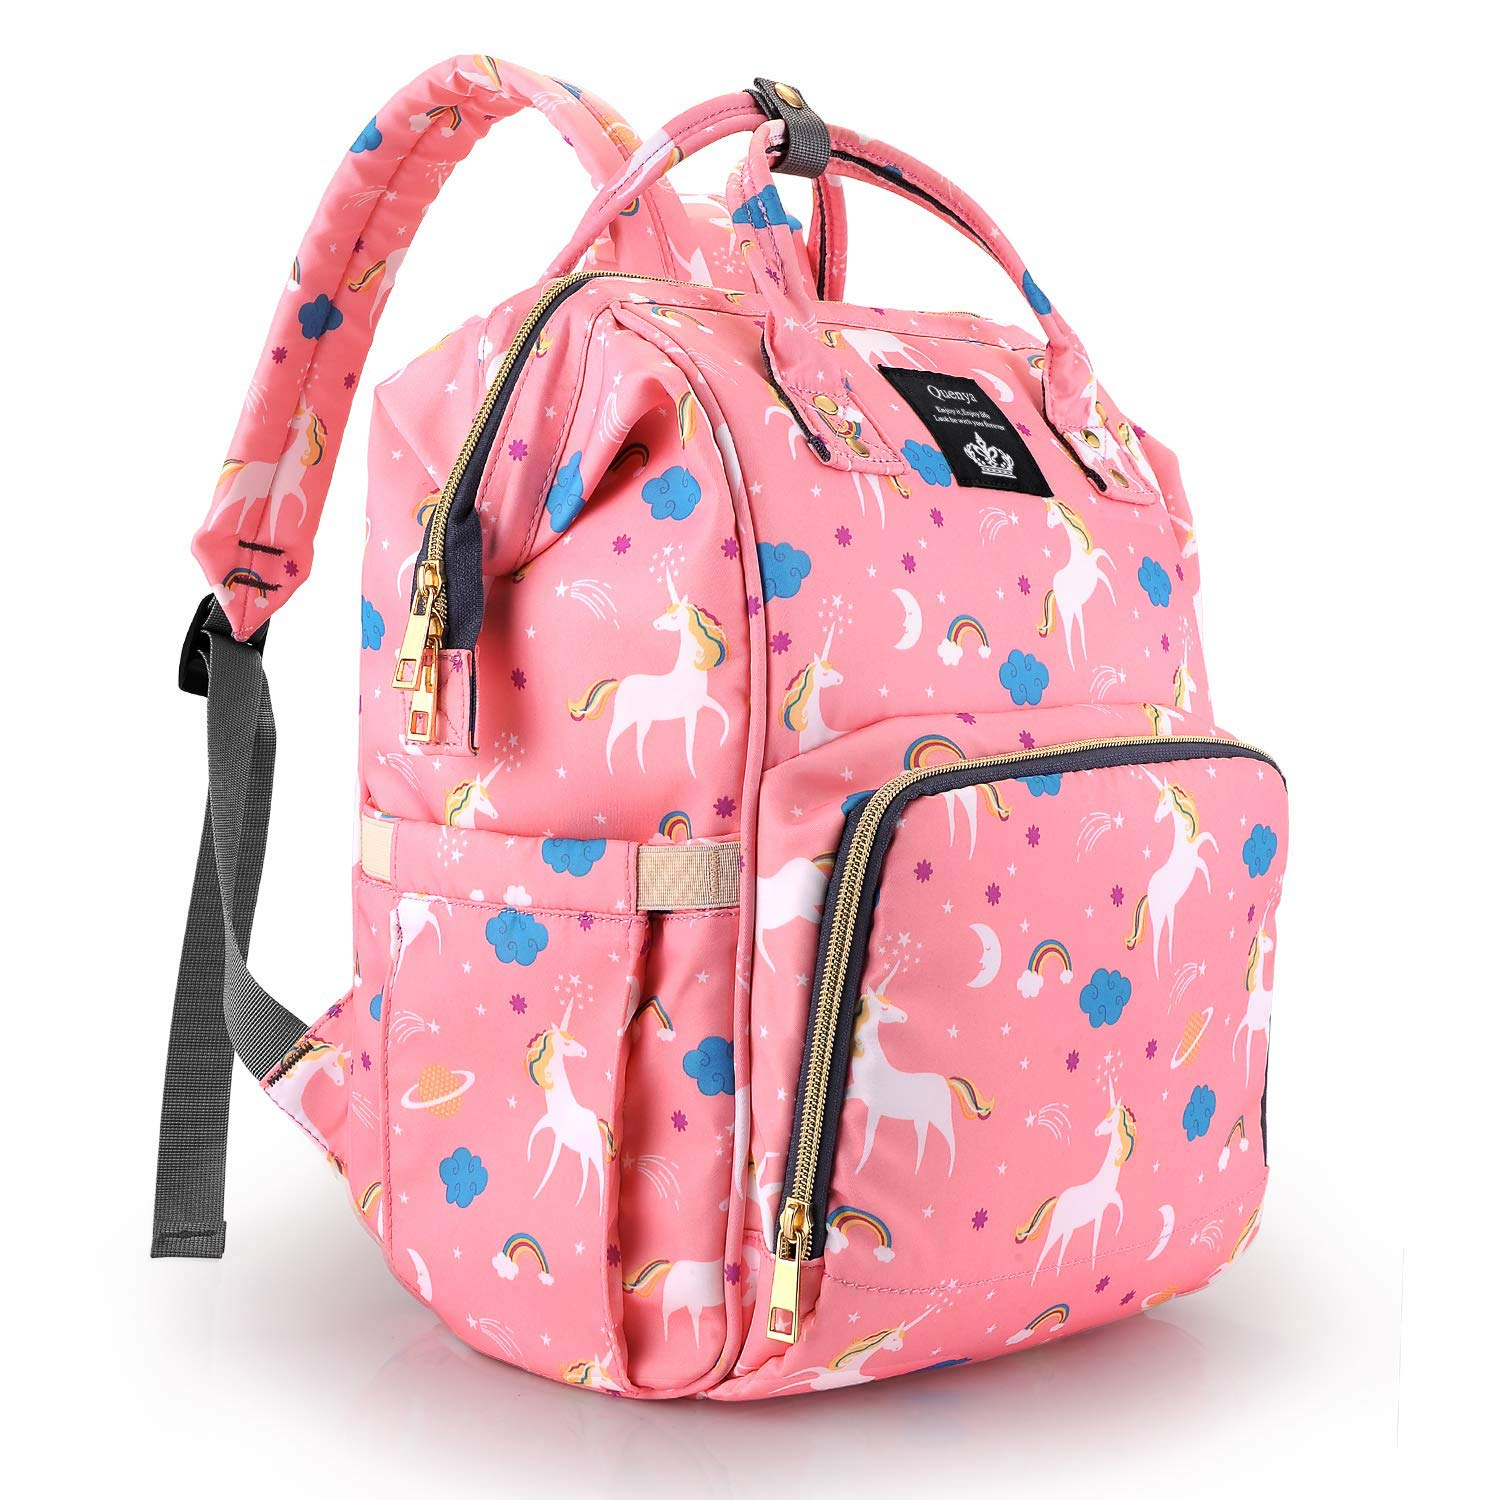 Unicorn Travel Rucksack Casual Daypack Nappy Diaper Bag Backpack for Mom Dad